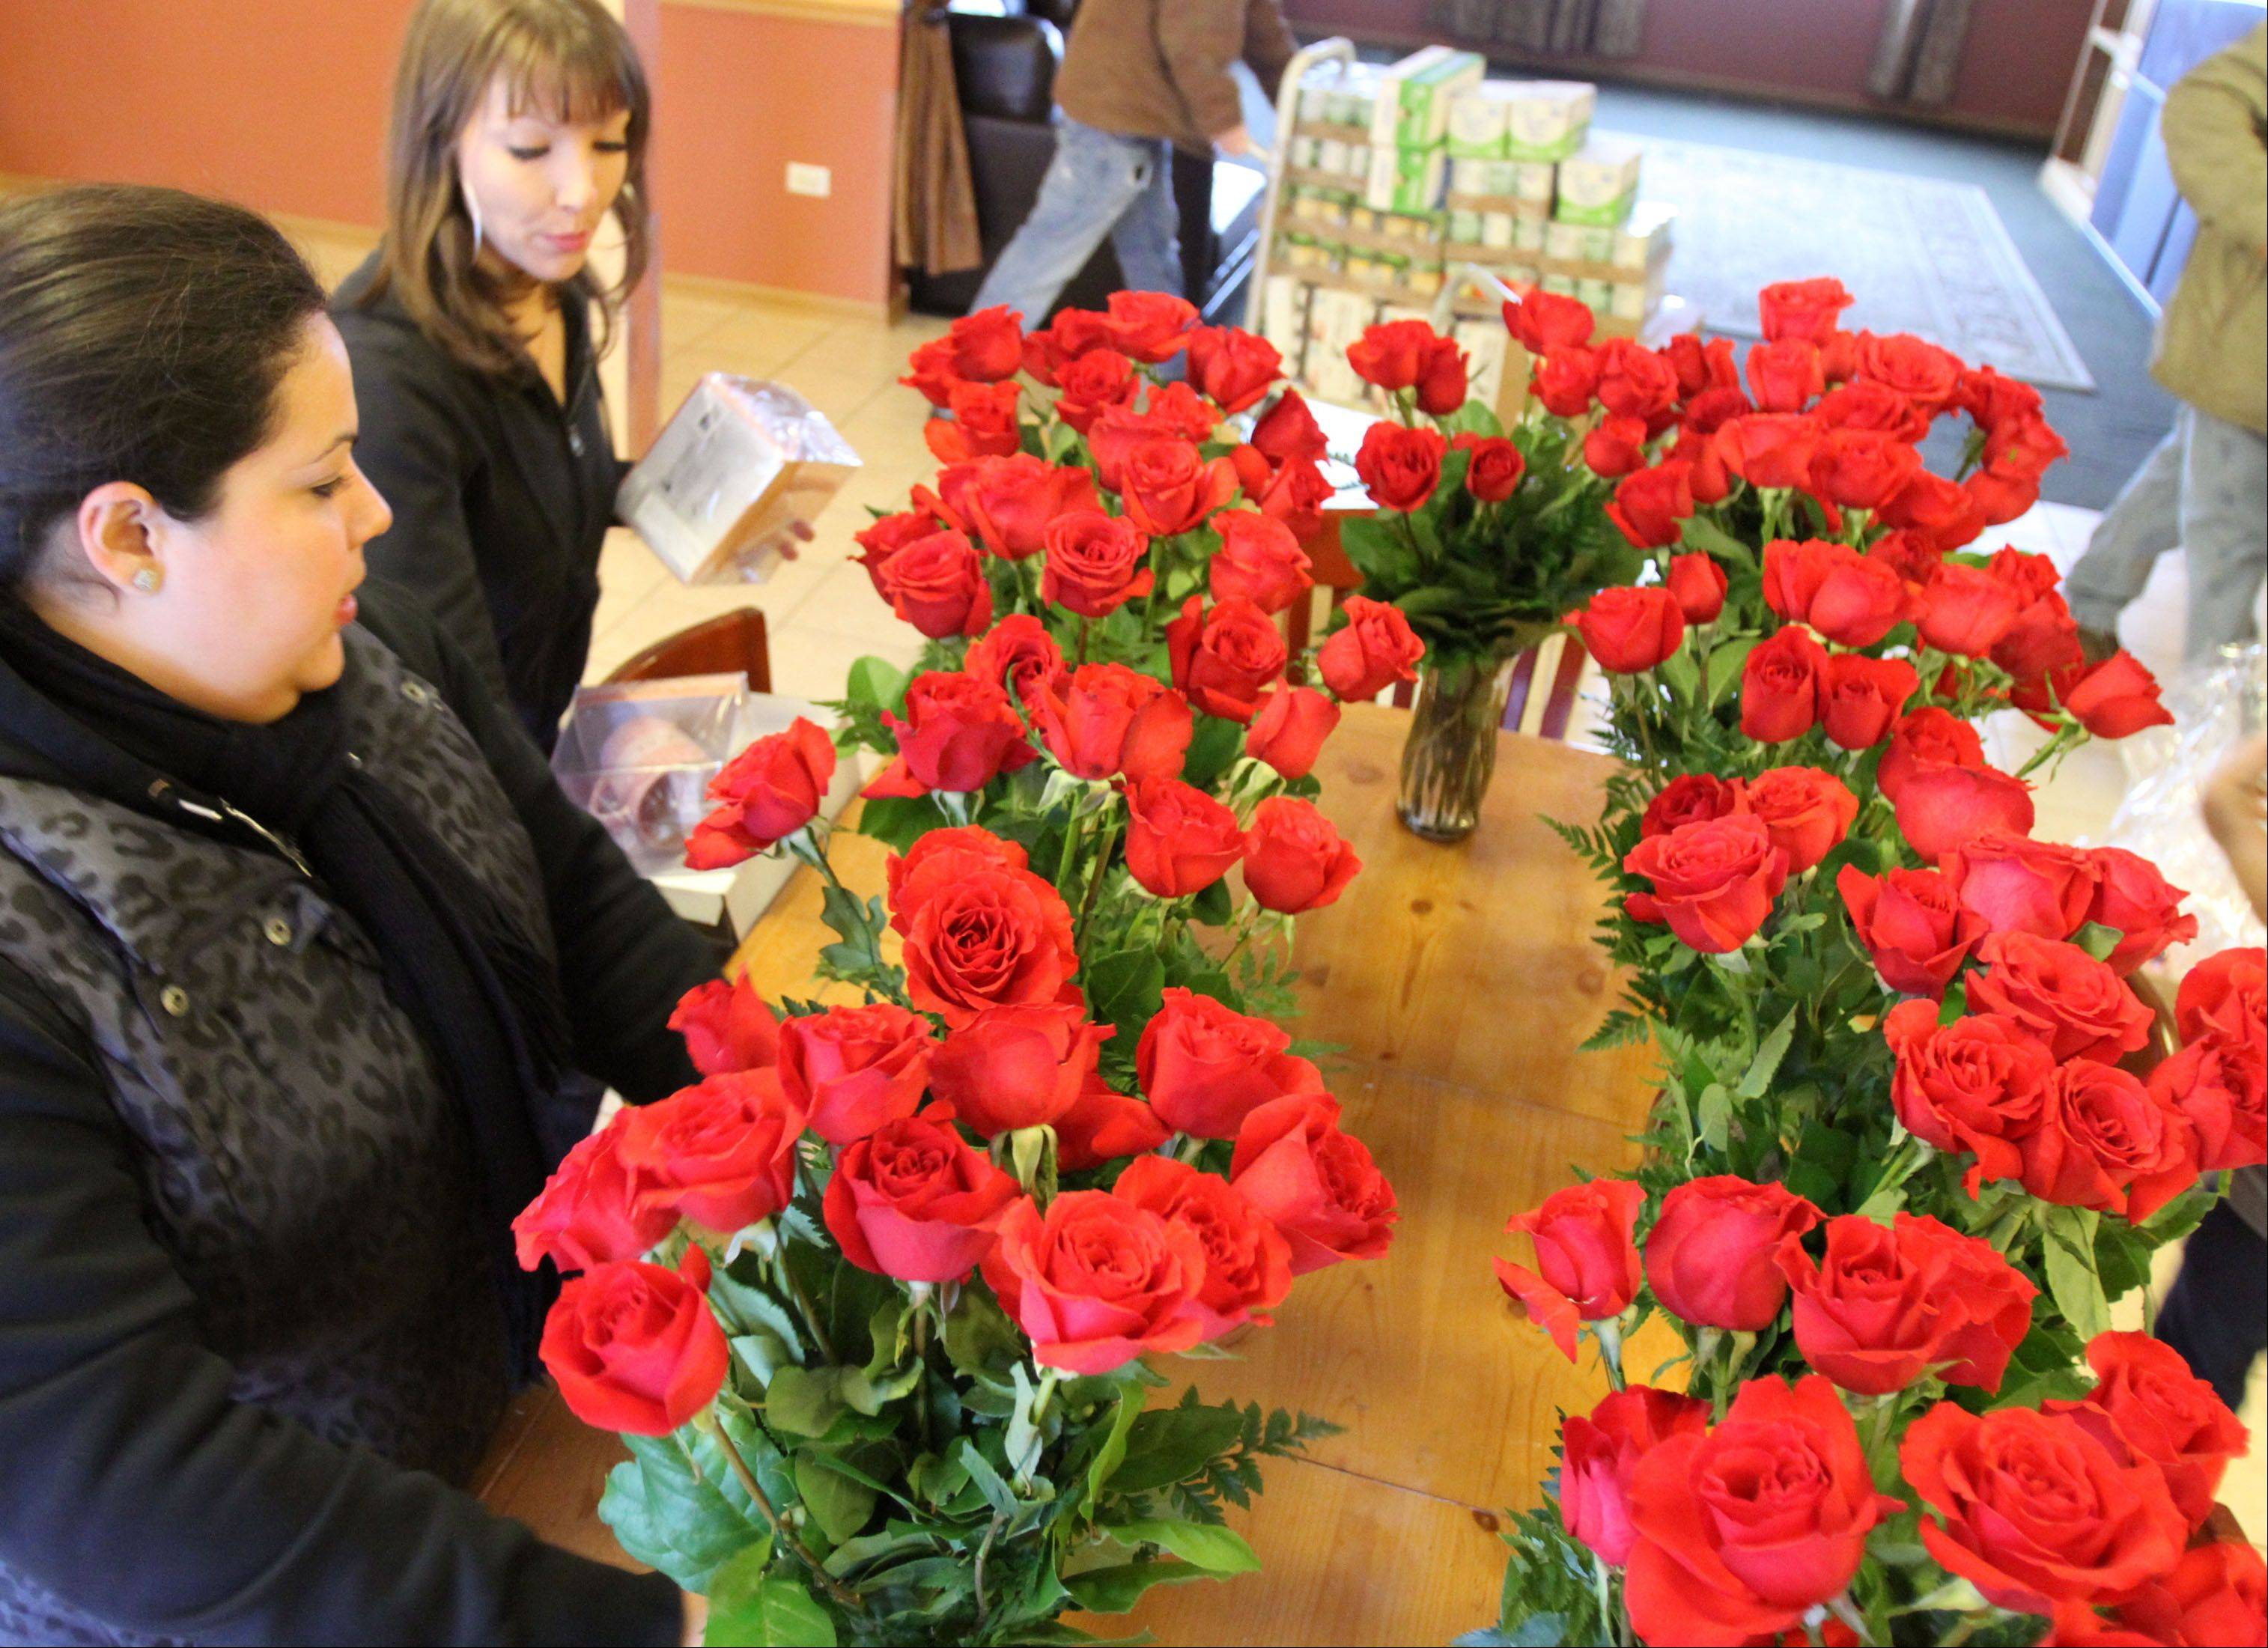 Sarah McClarey, top left, and Cindy Rodriguez deliver 10 dozen roses and gifts to victims of domestic violence and their children at a Northwest suburban safe house Thursday.